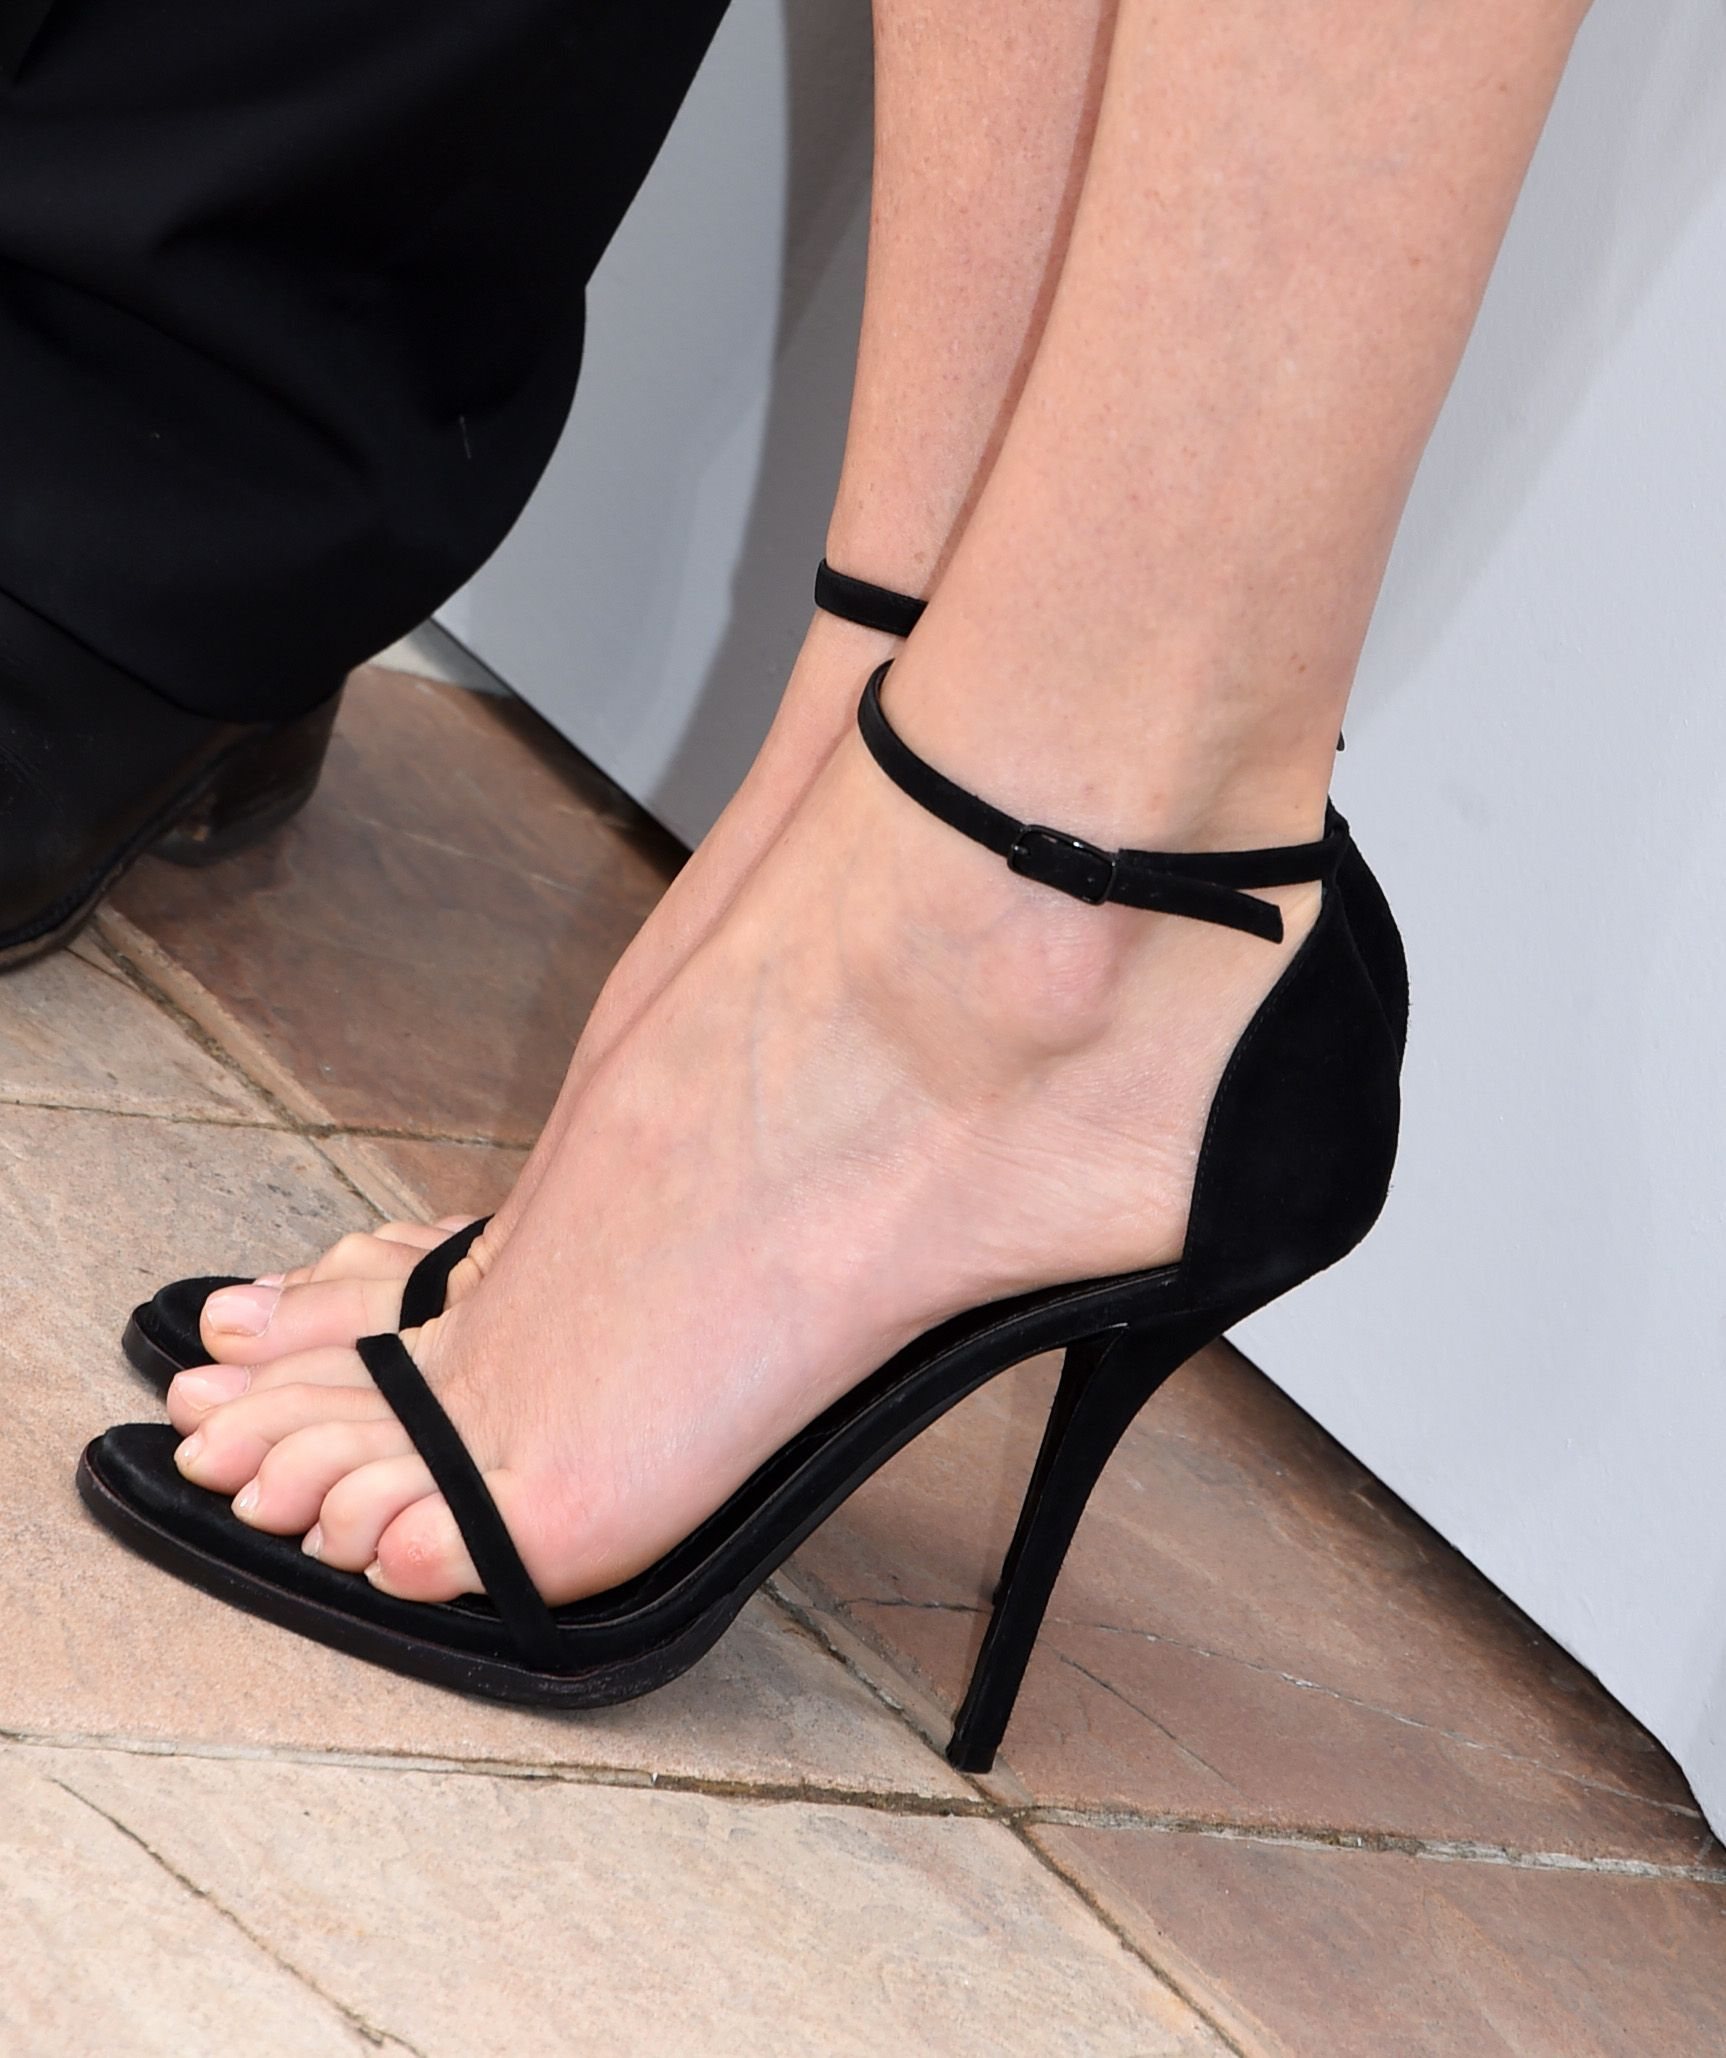 charlize theron 39 s feet. Black Bedroom Furniture Sets. Home Design Ideas